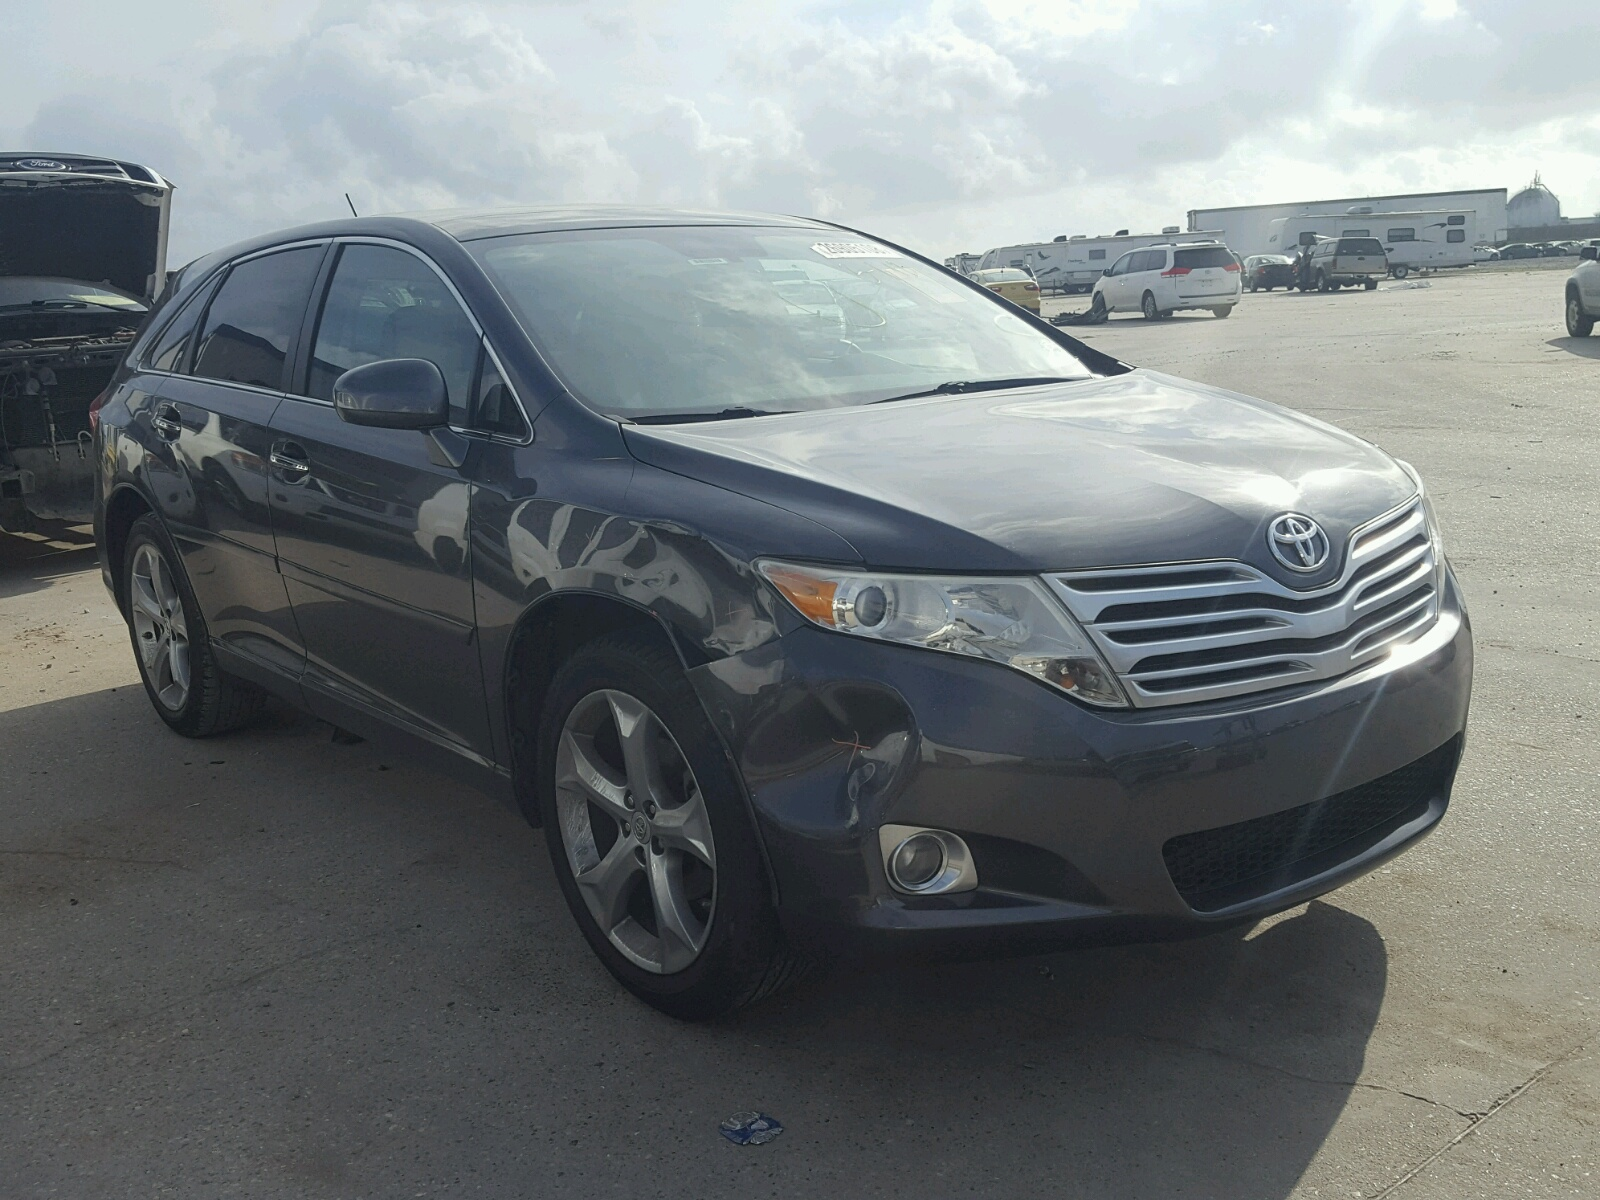 Auto Auction Ended on VIN 4T3BA3BB9BU 2011 TOYOTA VENZA BASE